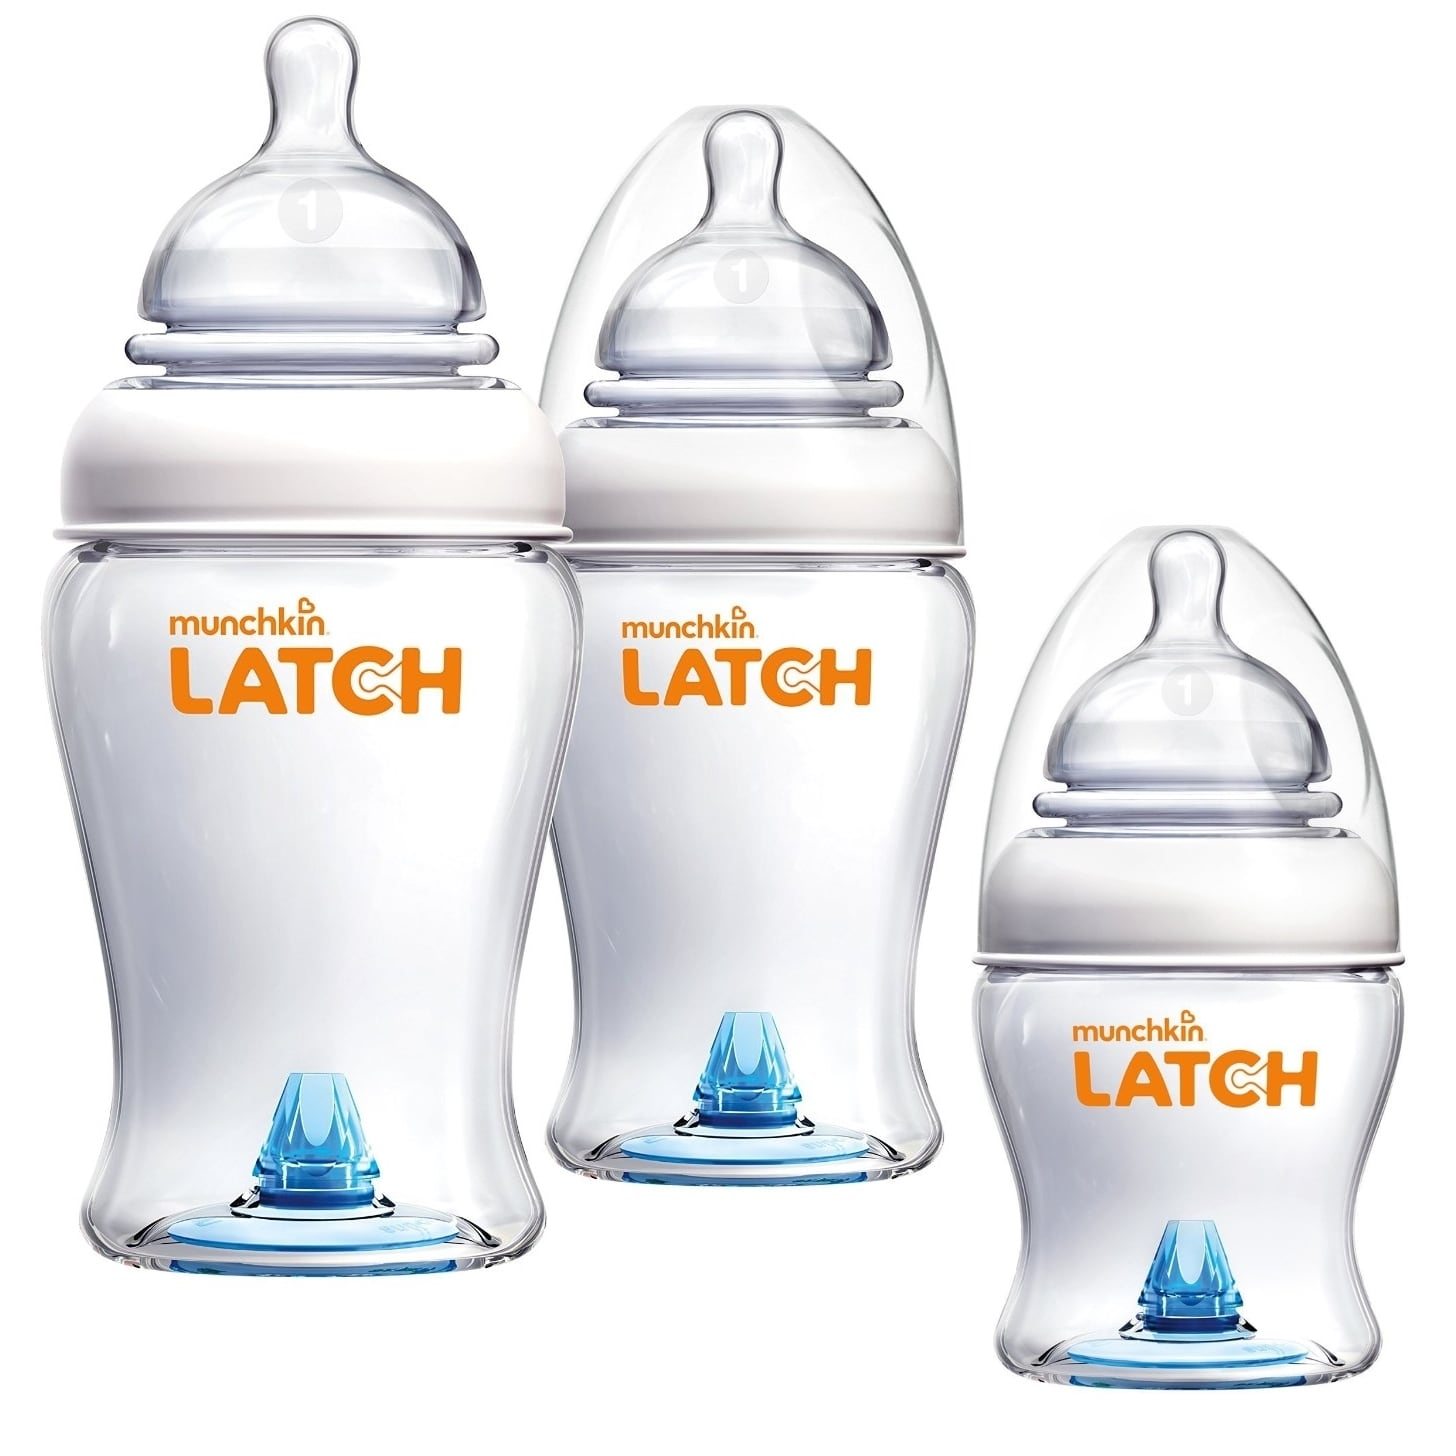 Munchkin Latch BPA-Free 4 Ounce and 8 Ounce Bottle Set